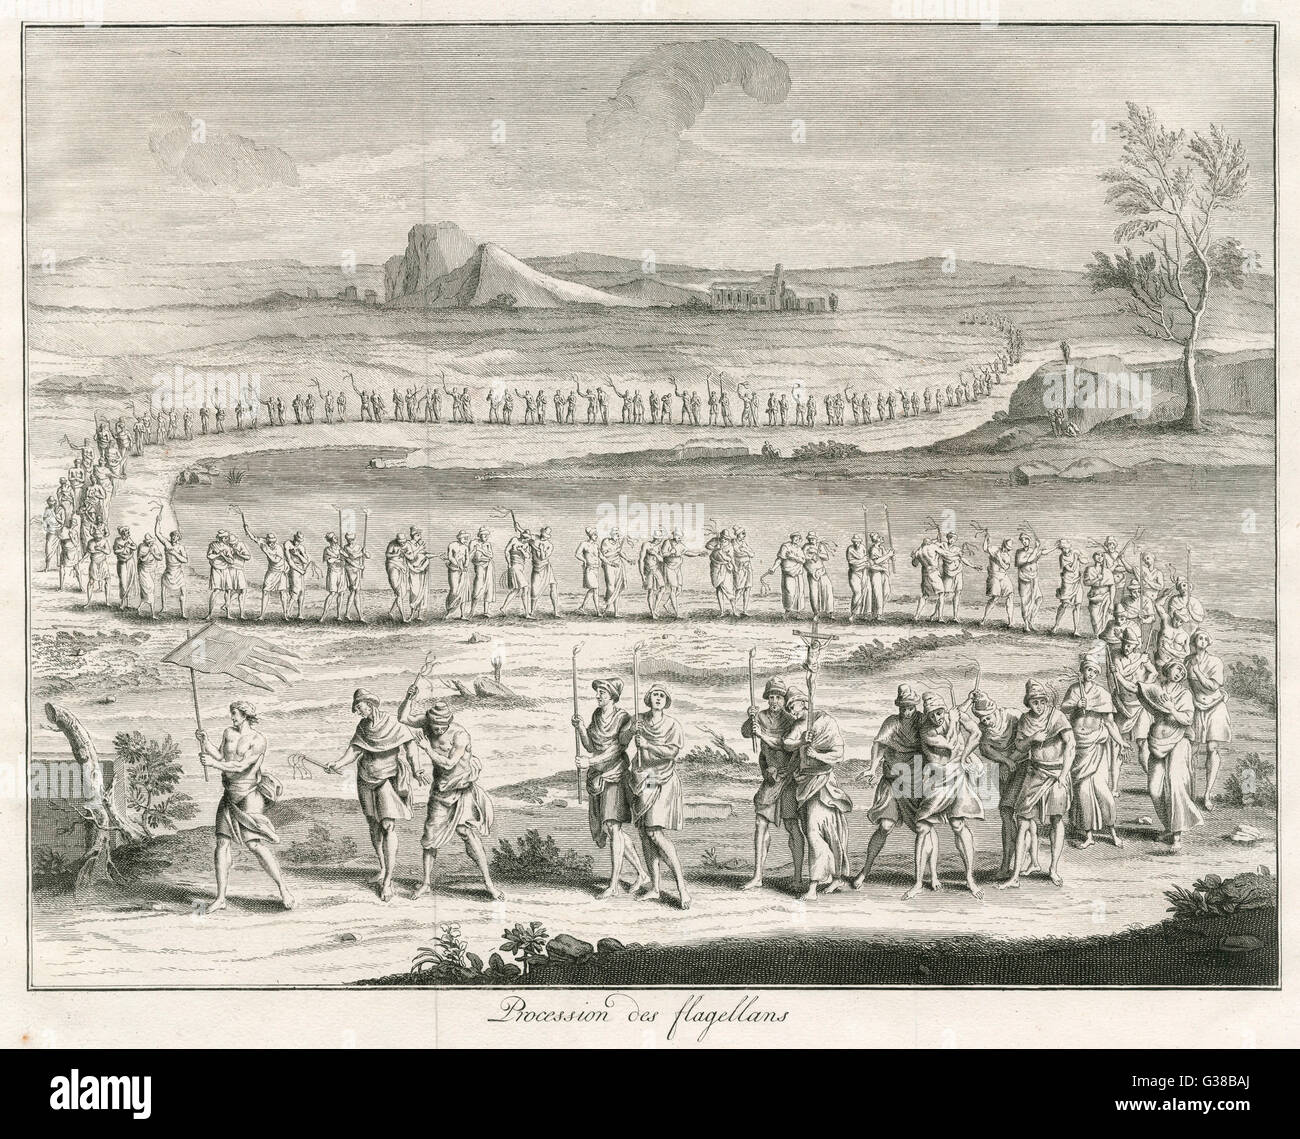 Procession of flagellants  during the Middle Ages - Stock Image